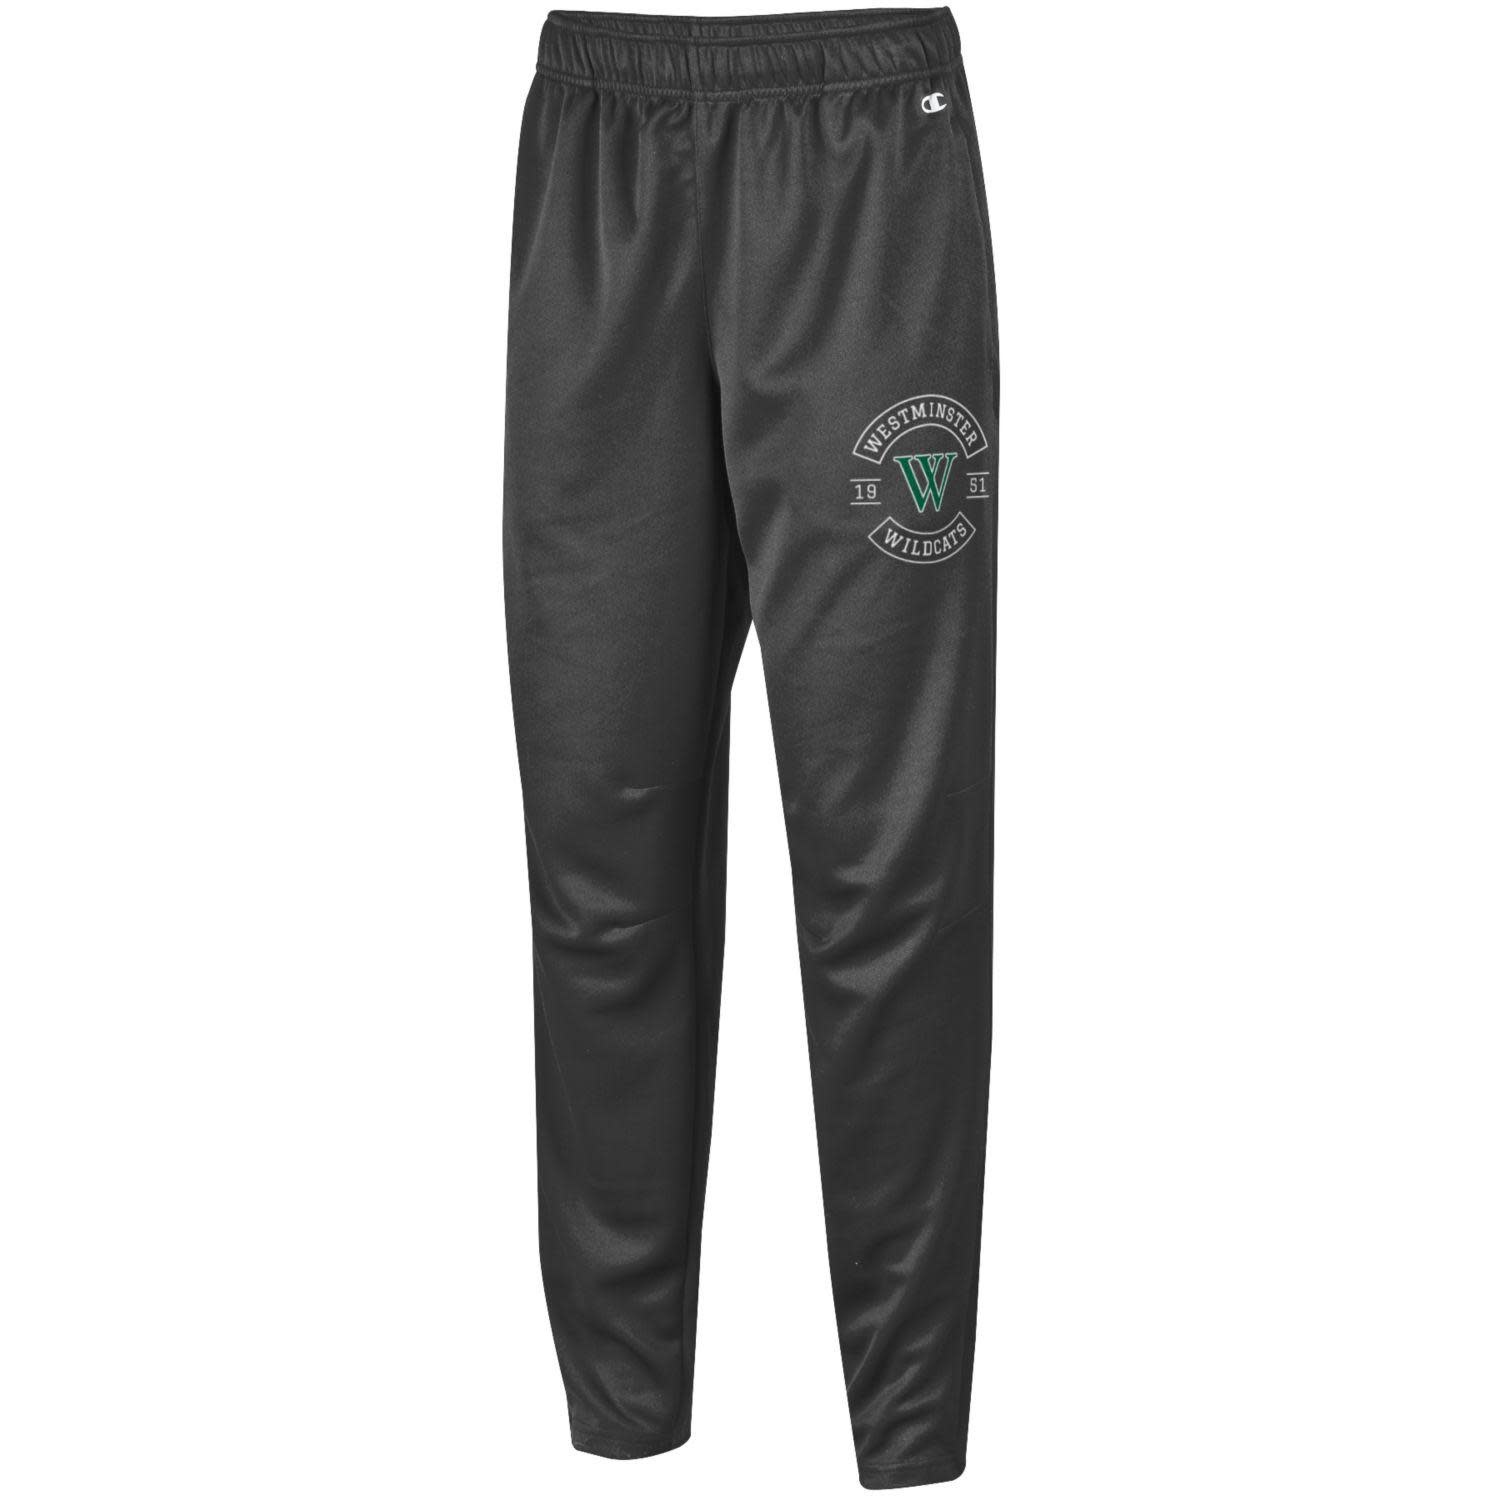 Sweatpants: Champion Charcoal Heather/WM Wildcats Arched around W and 1951